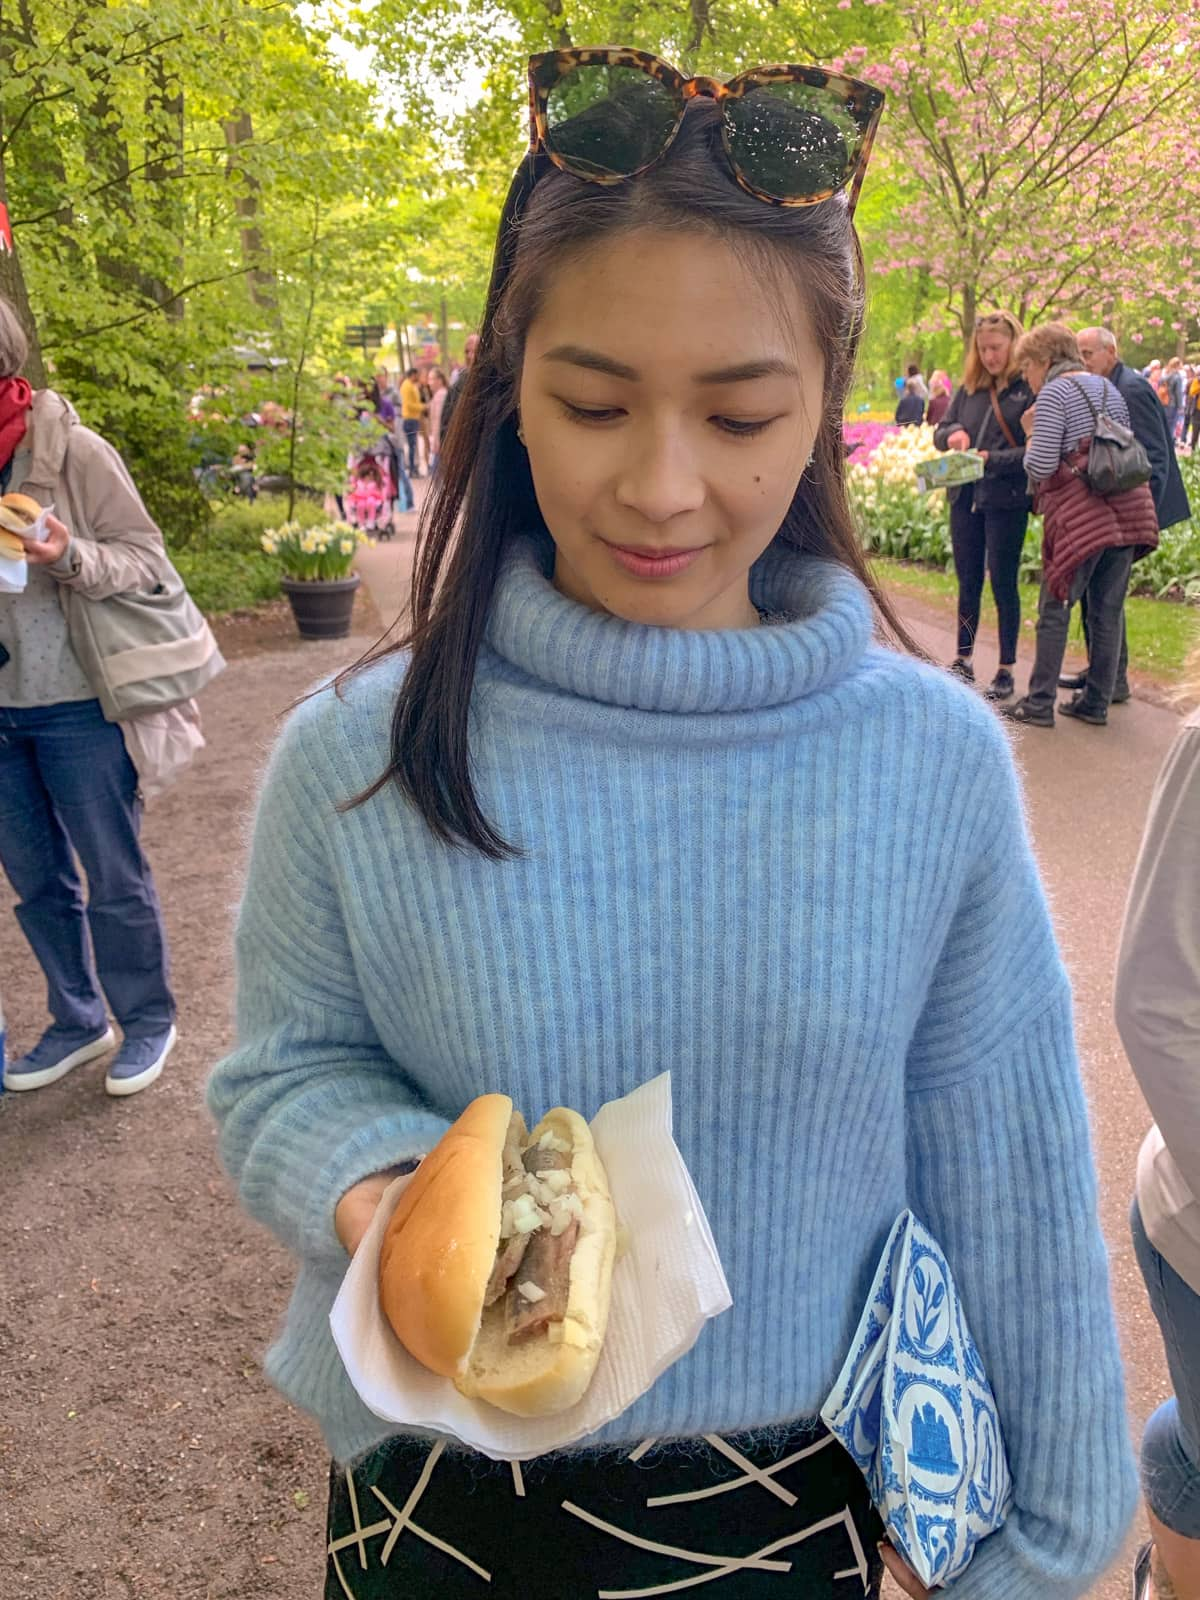 A woman wearing a light blue sweater, holding a napkin with a bun filled with raw herring and onion. She is looking down slightly at the bun with a small smile